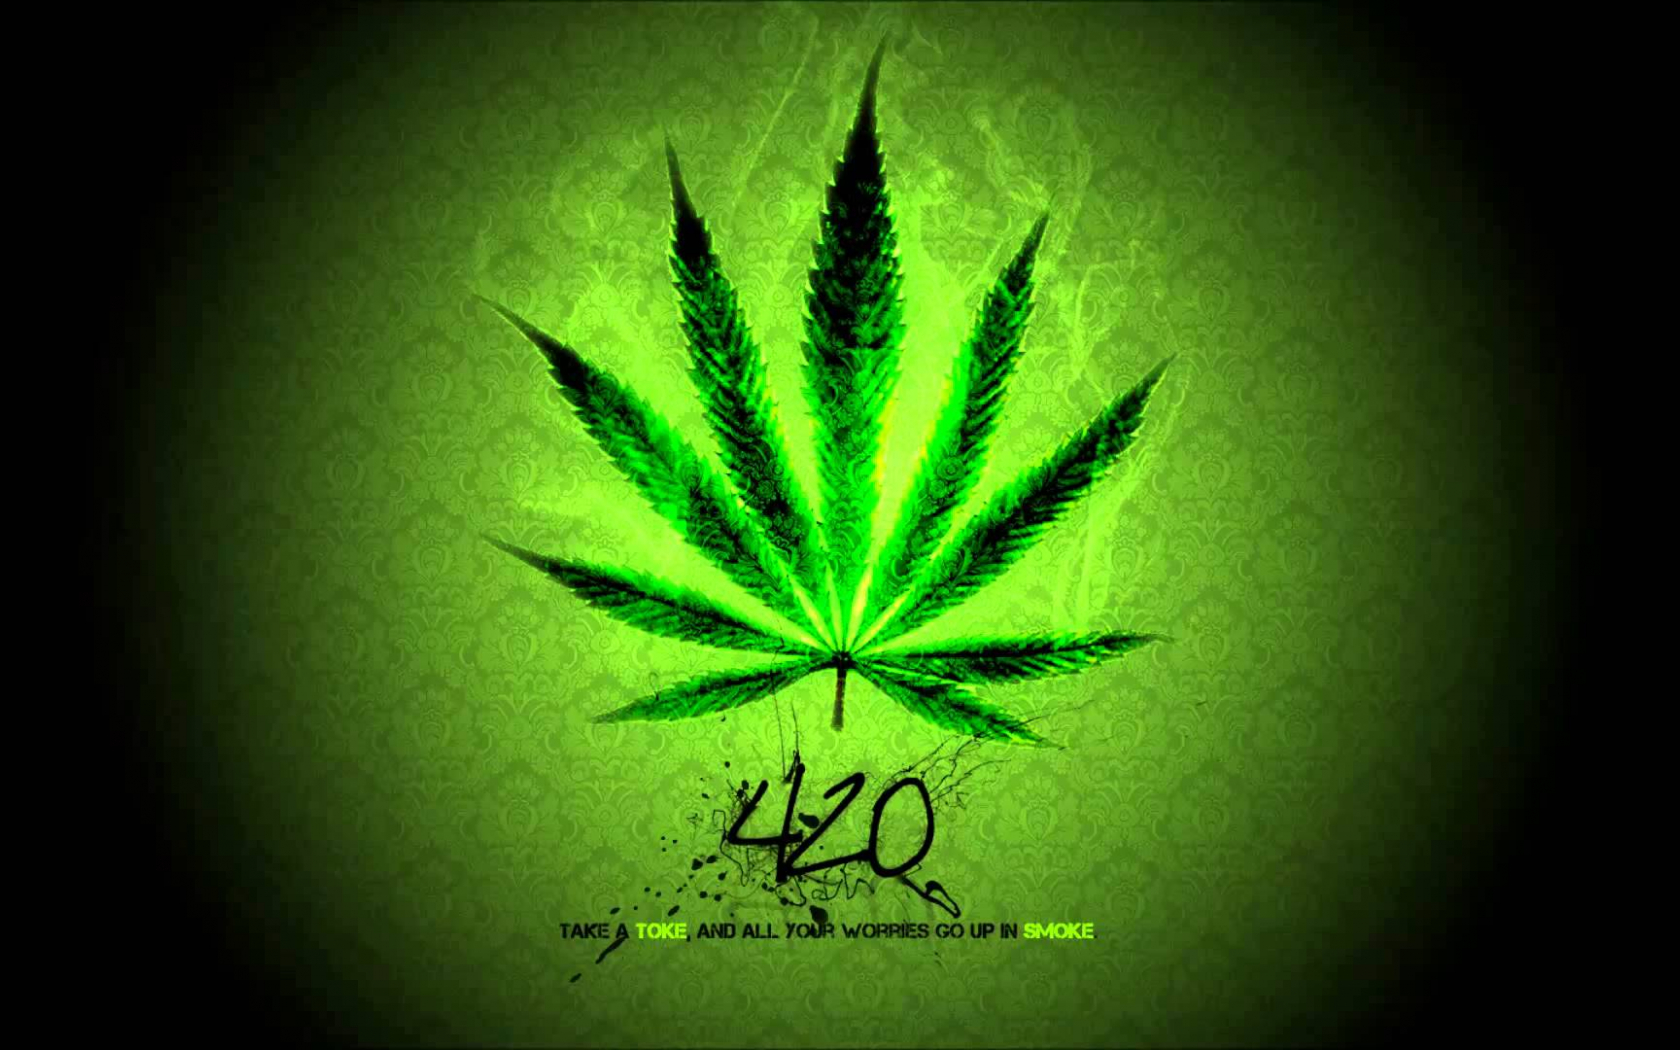 Free Download Weed Wallpaper Hd 1080p Maxresdefaultjpg Pictures